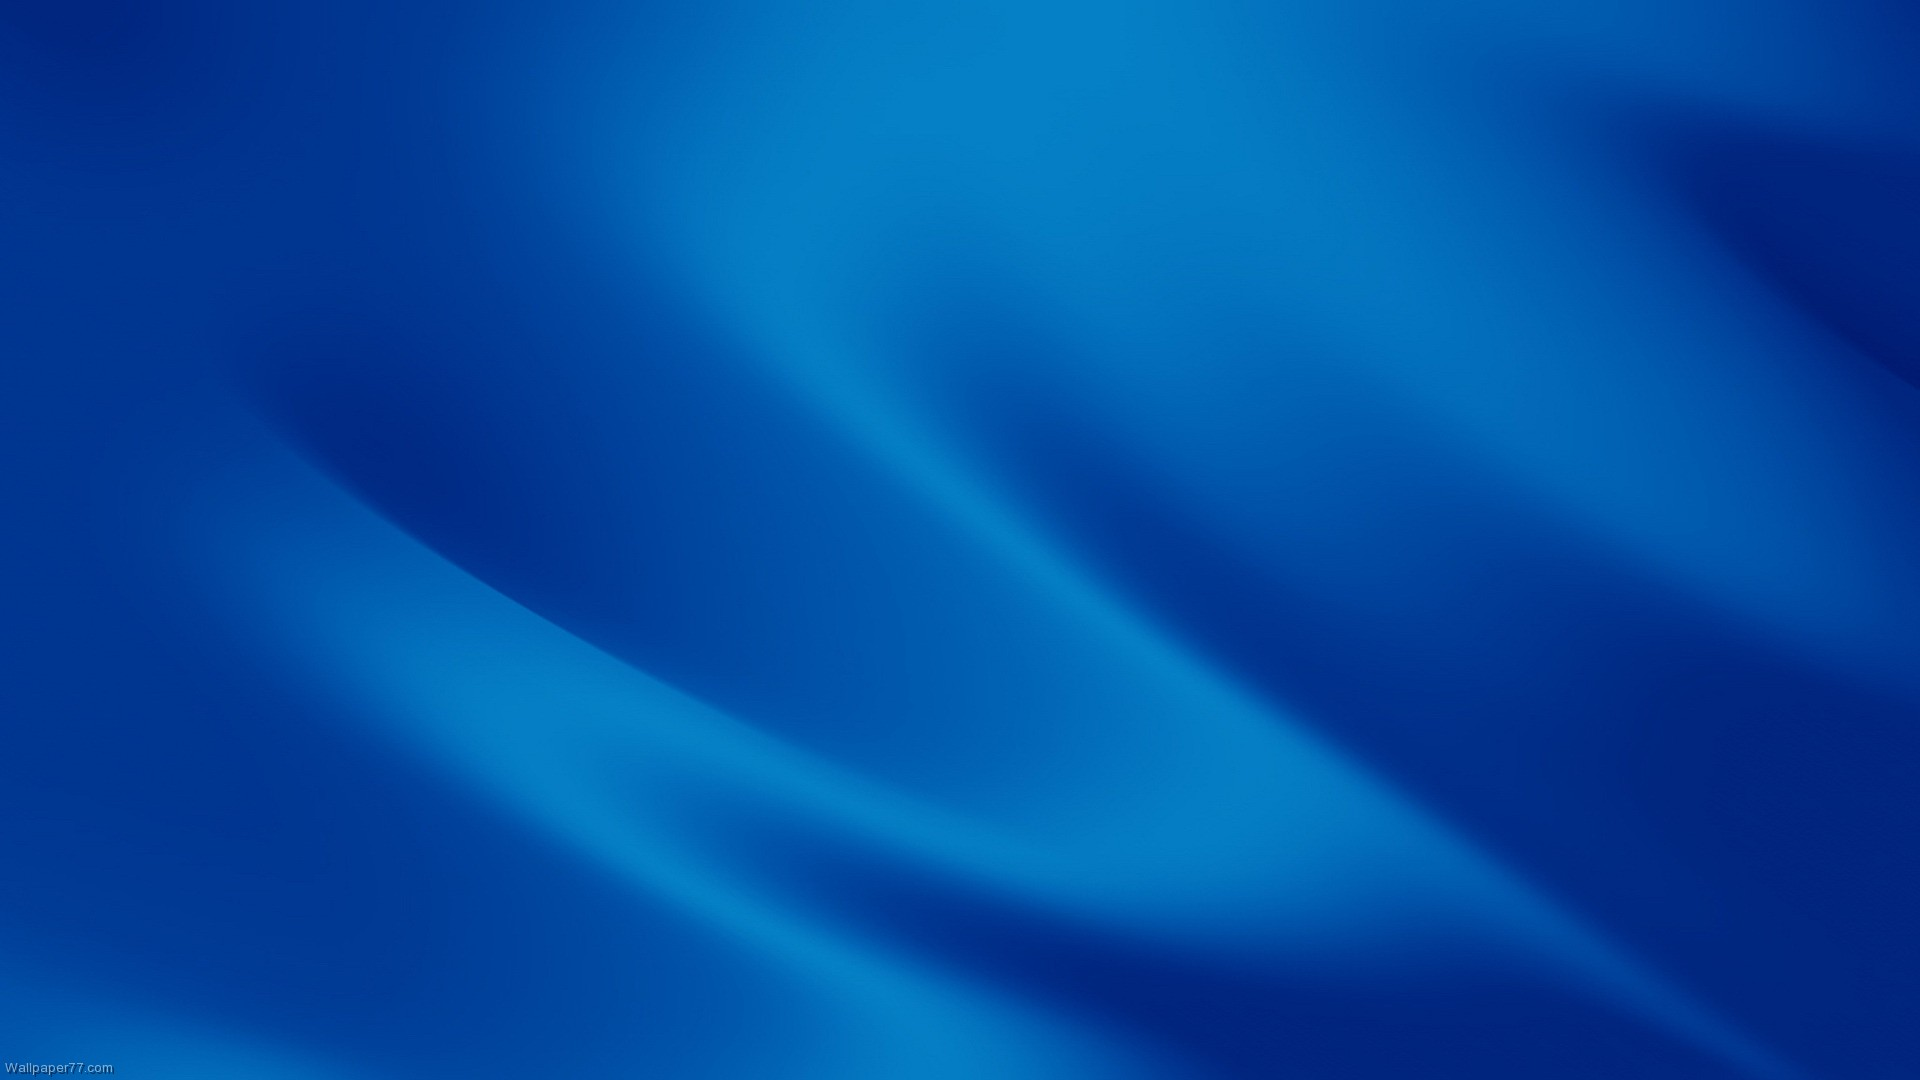 Dark Blue wallpaper   1163135 1920x1080